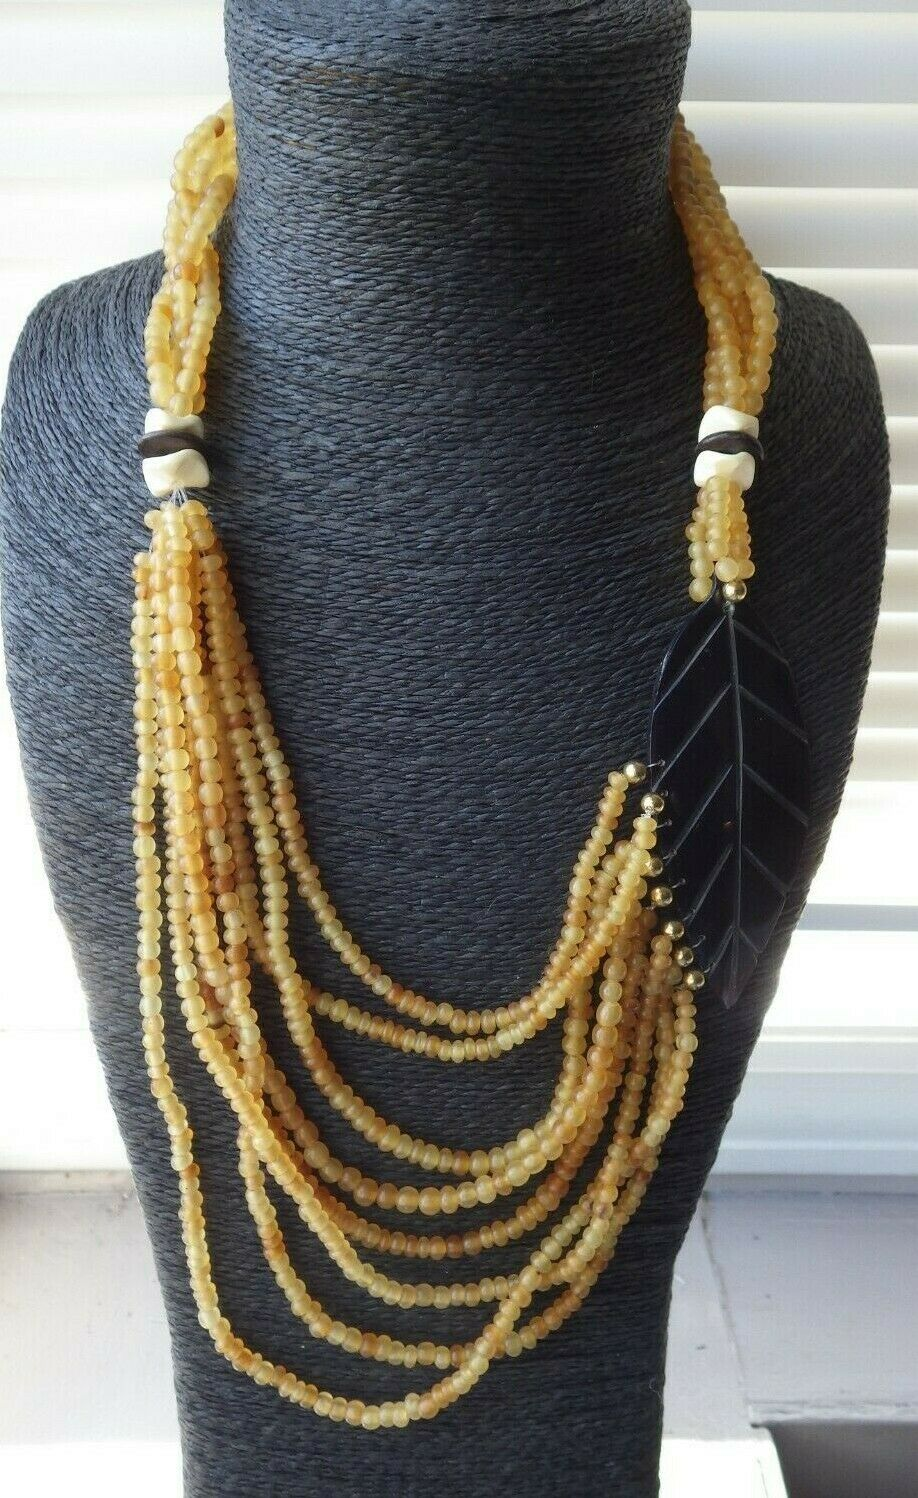 Monies Gerda Lynggaard Multi Strand Seed Beaded Lucite Leaf Necklace